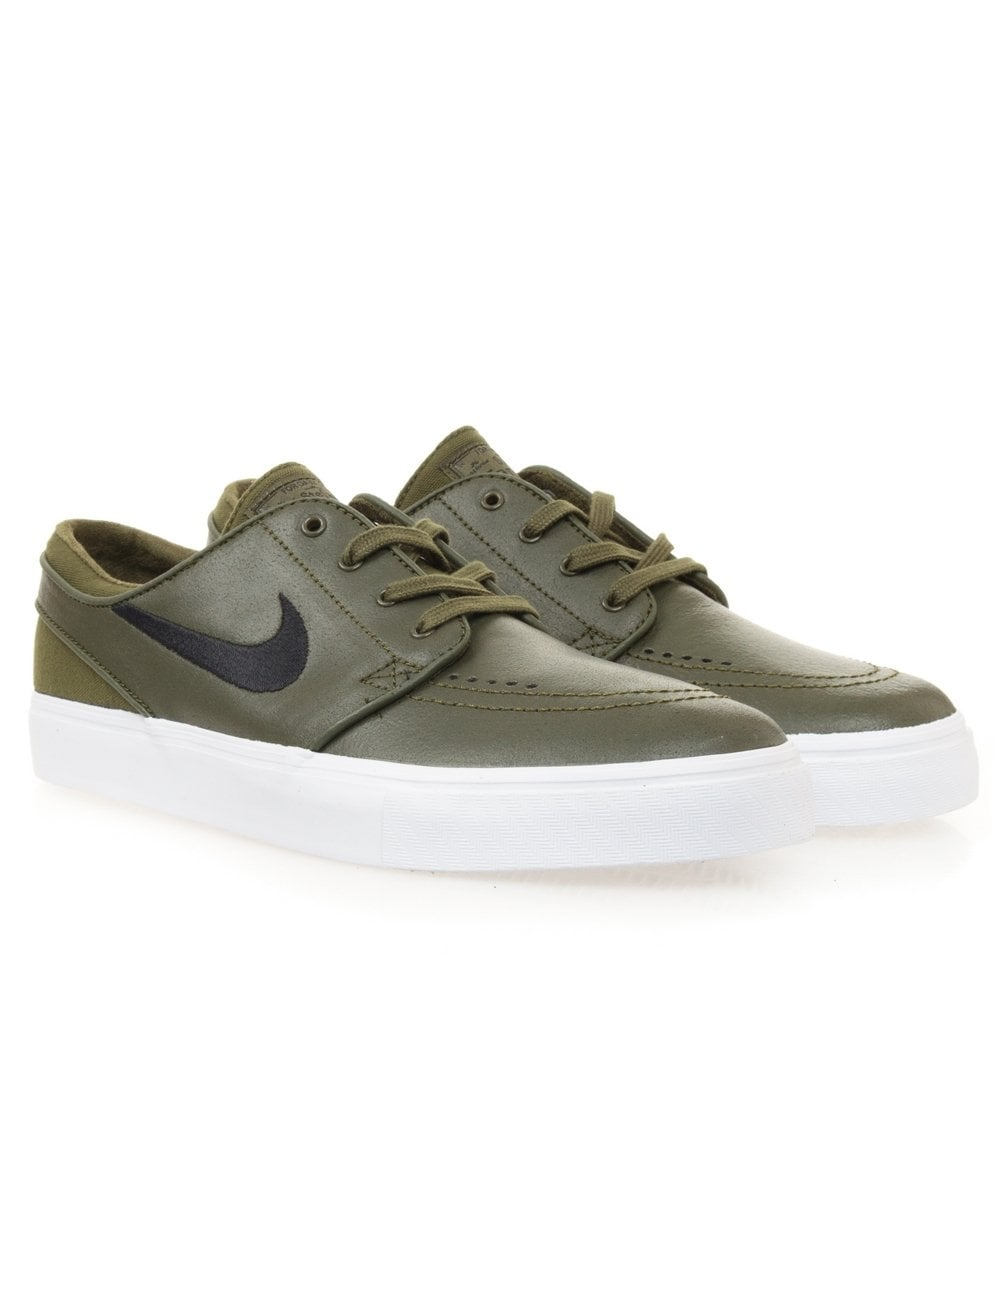 c8beb2374fb3c7 Nike SB Stefan Janoski - Legion Green Black - Footwear from Fat ...